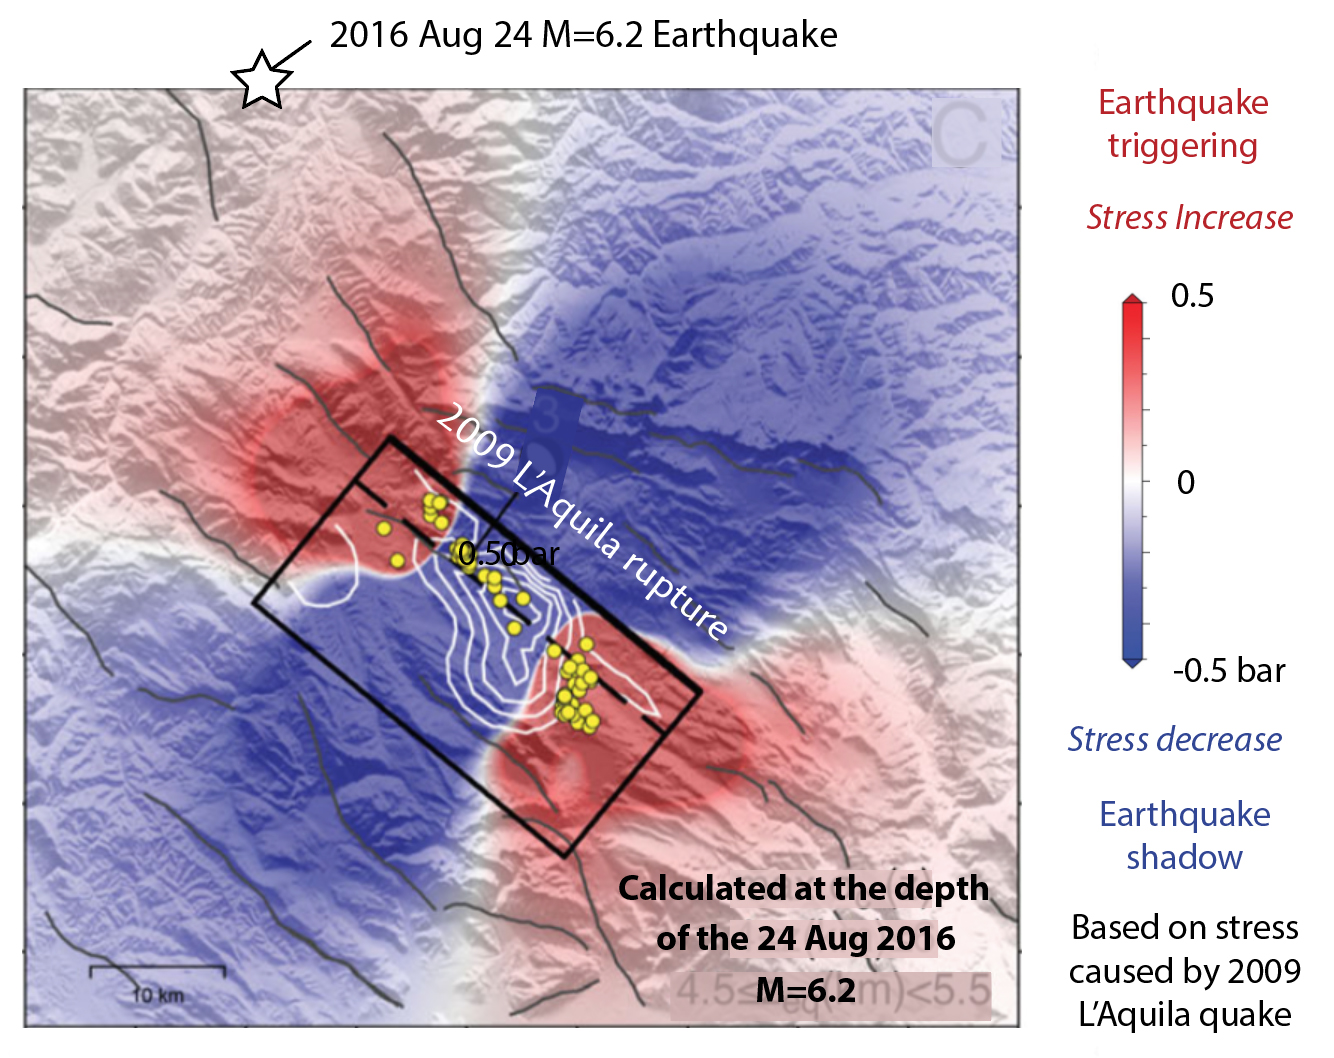 The M=6.2 epicenter is located in the earthquake triggering zone of the 6 April 2009 L'Aquila rupture (black rectangle). We modified this figure from Serpelloni, Anderlini and Belardinelli (2012).